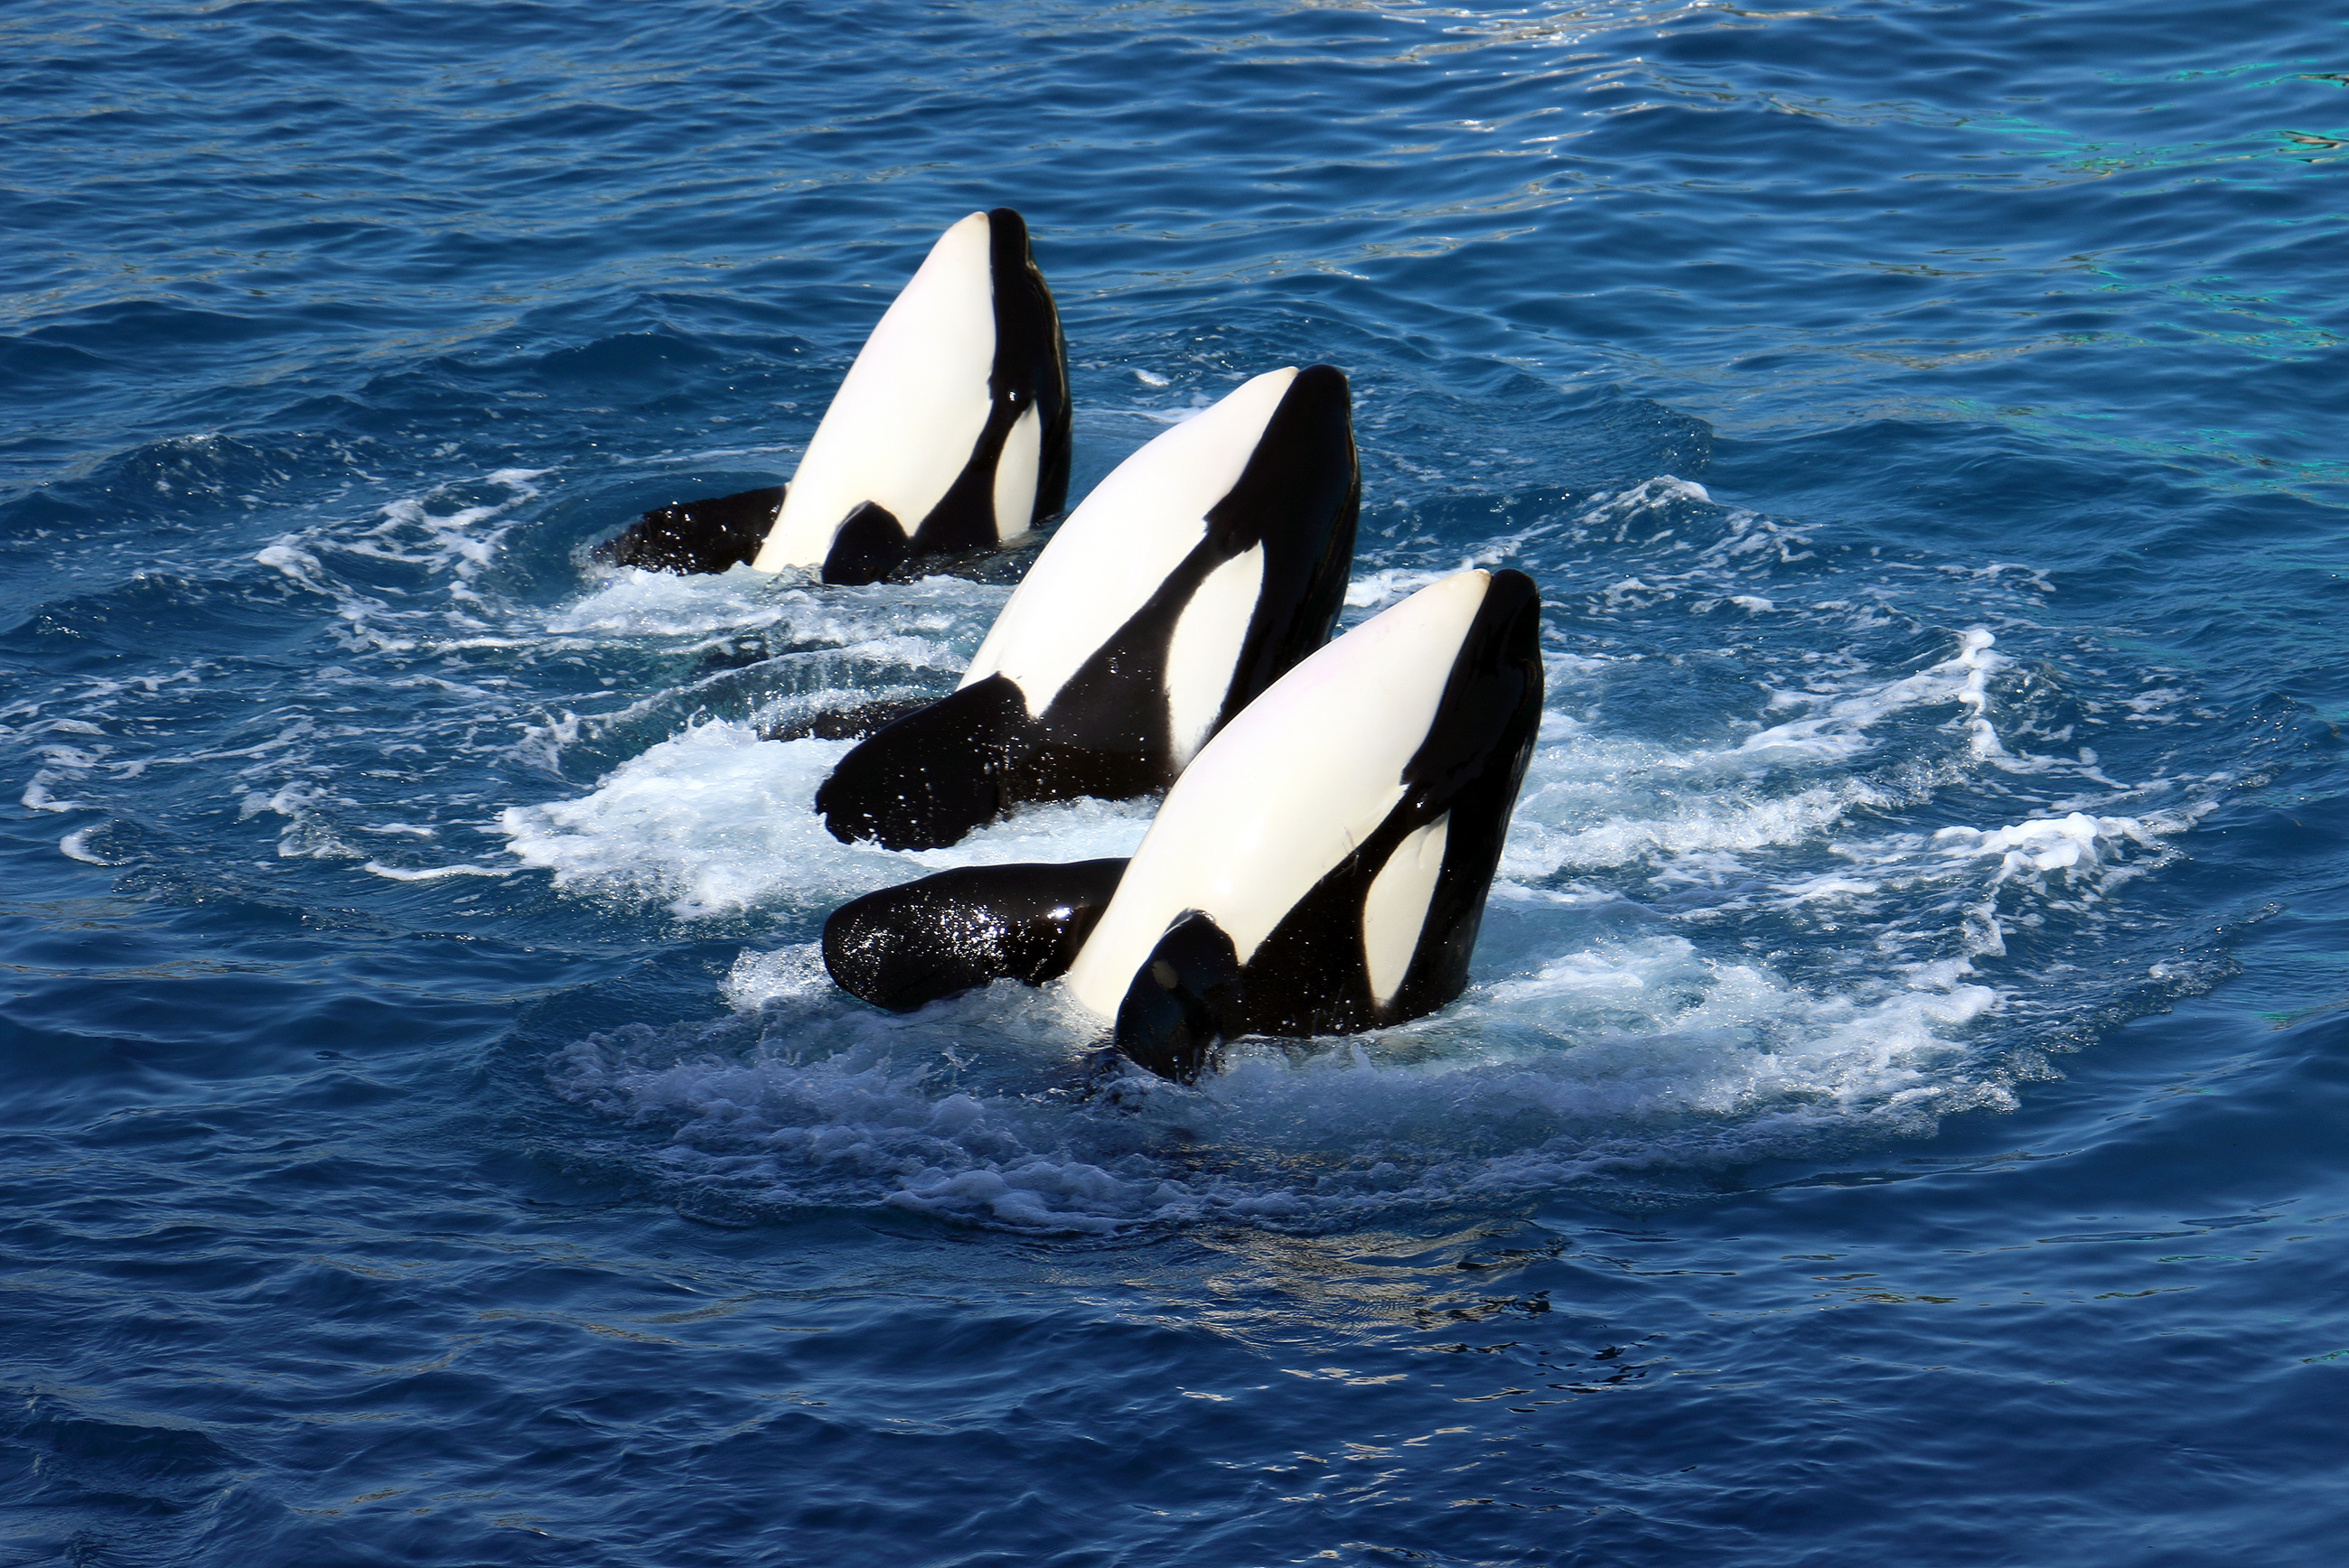 Killer whales can 'talk' as scientists teach orcas to mimic human speech